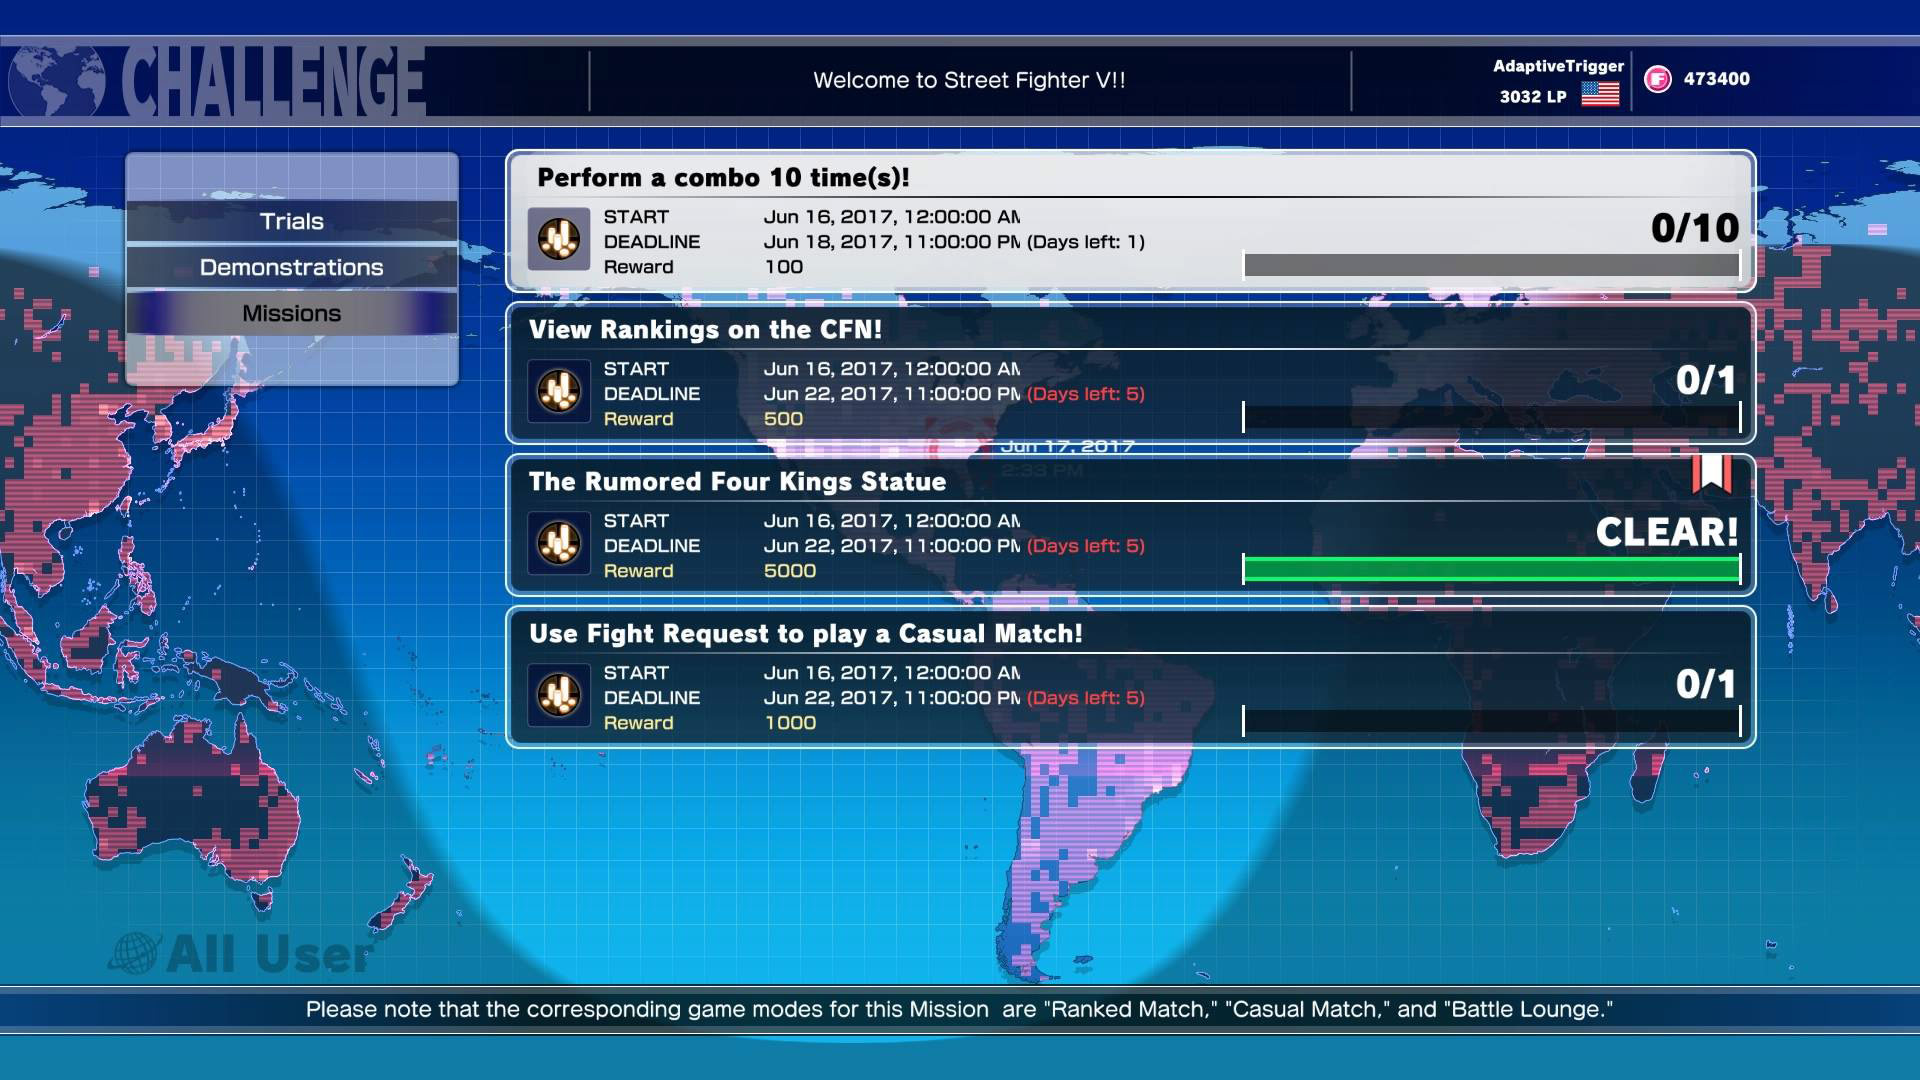 Street Fighter 5 Missions 06/17/17 1 out of 1 image gallery